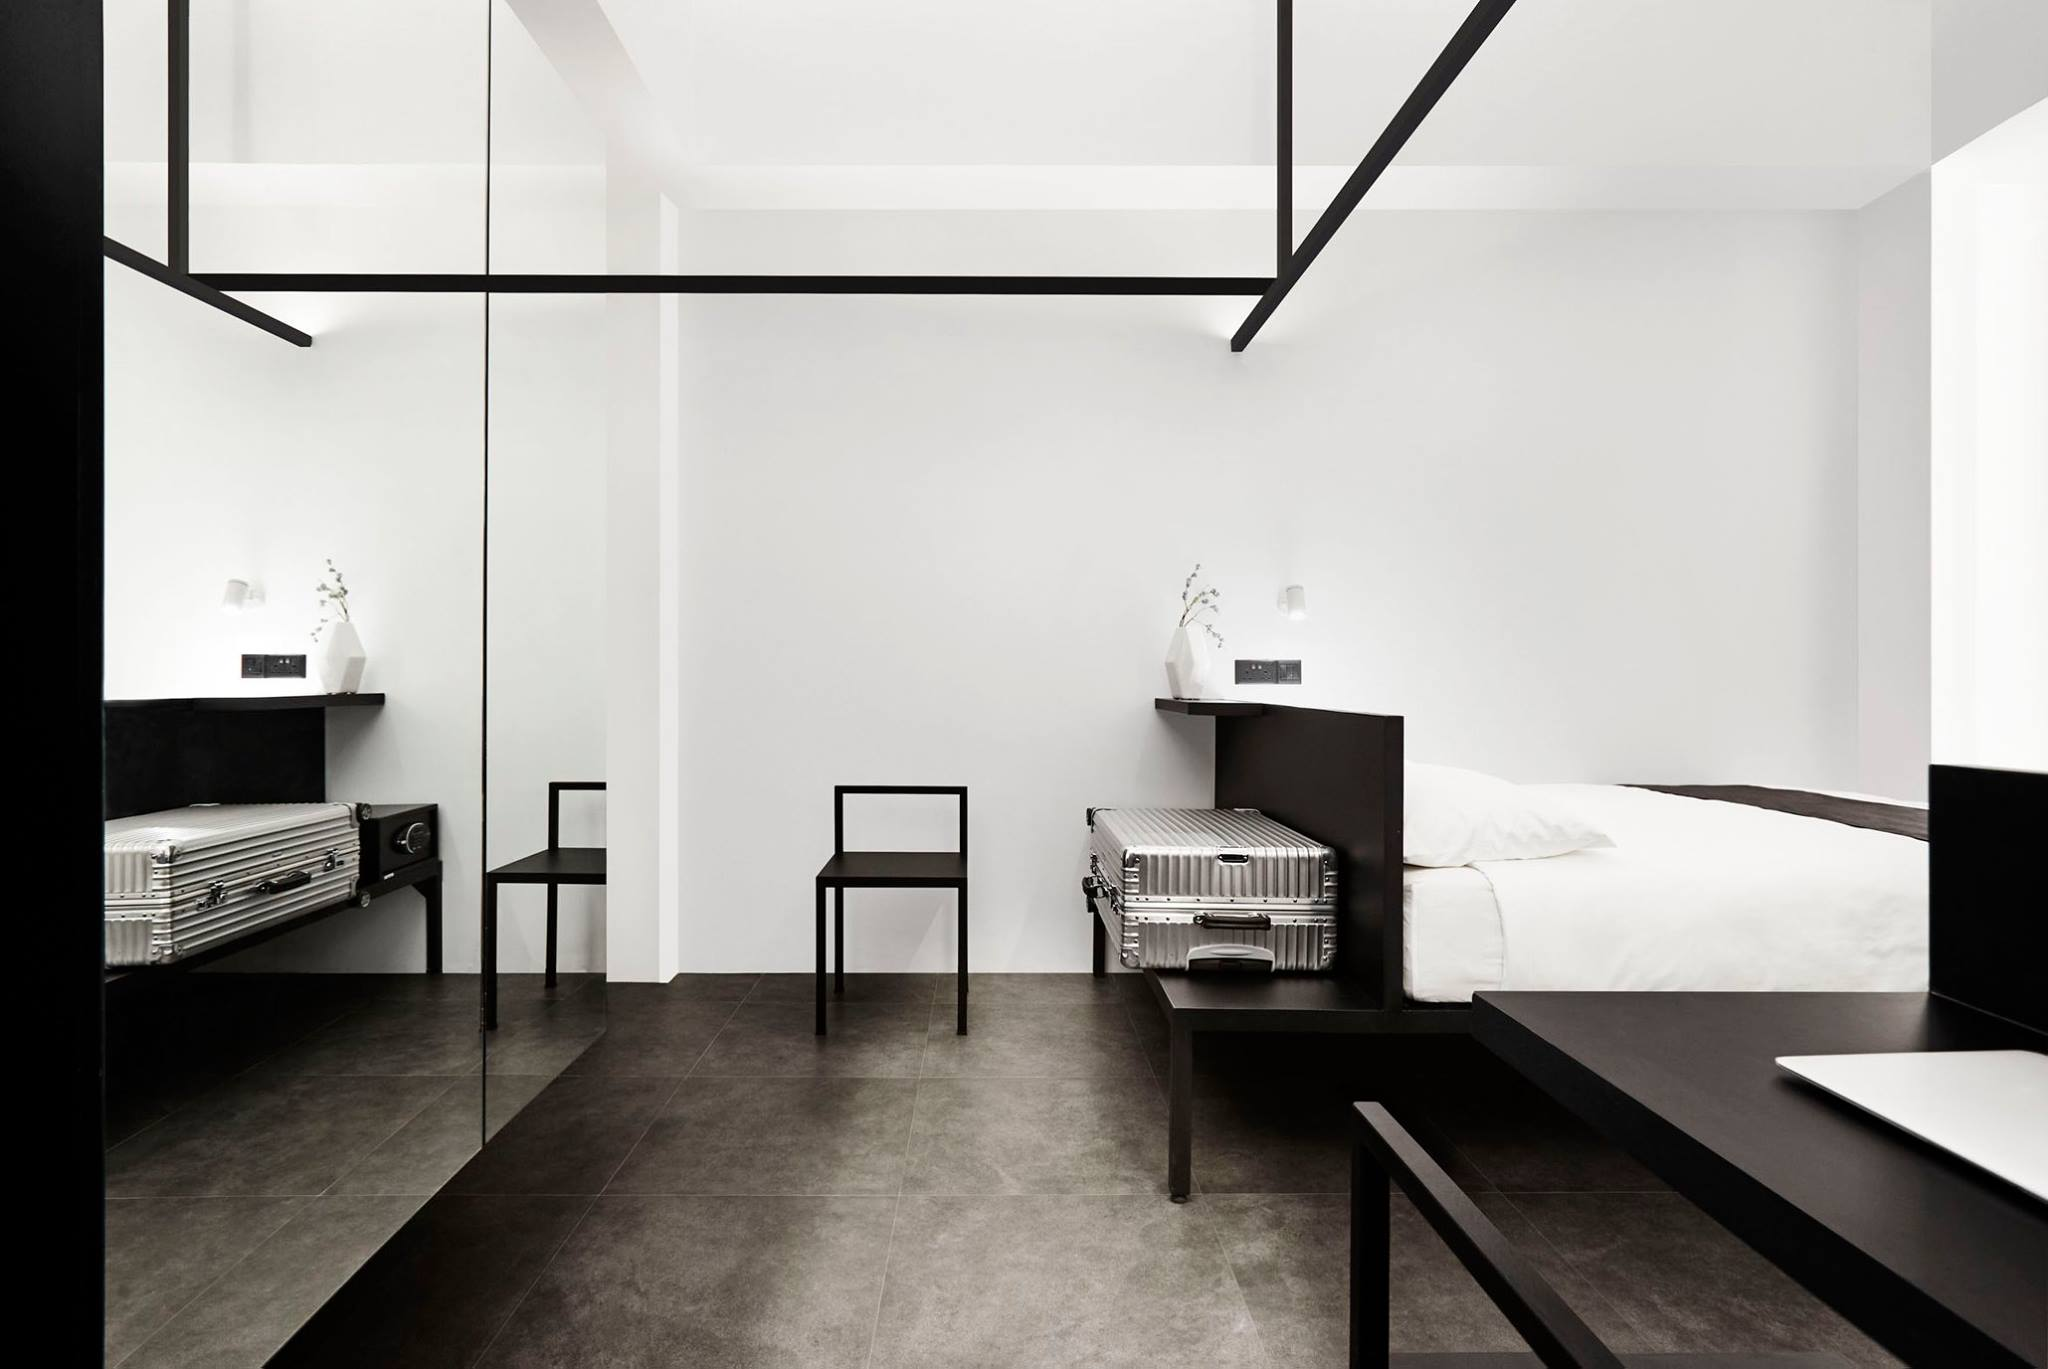 Image from Hotel Mono